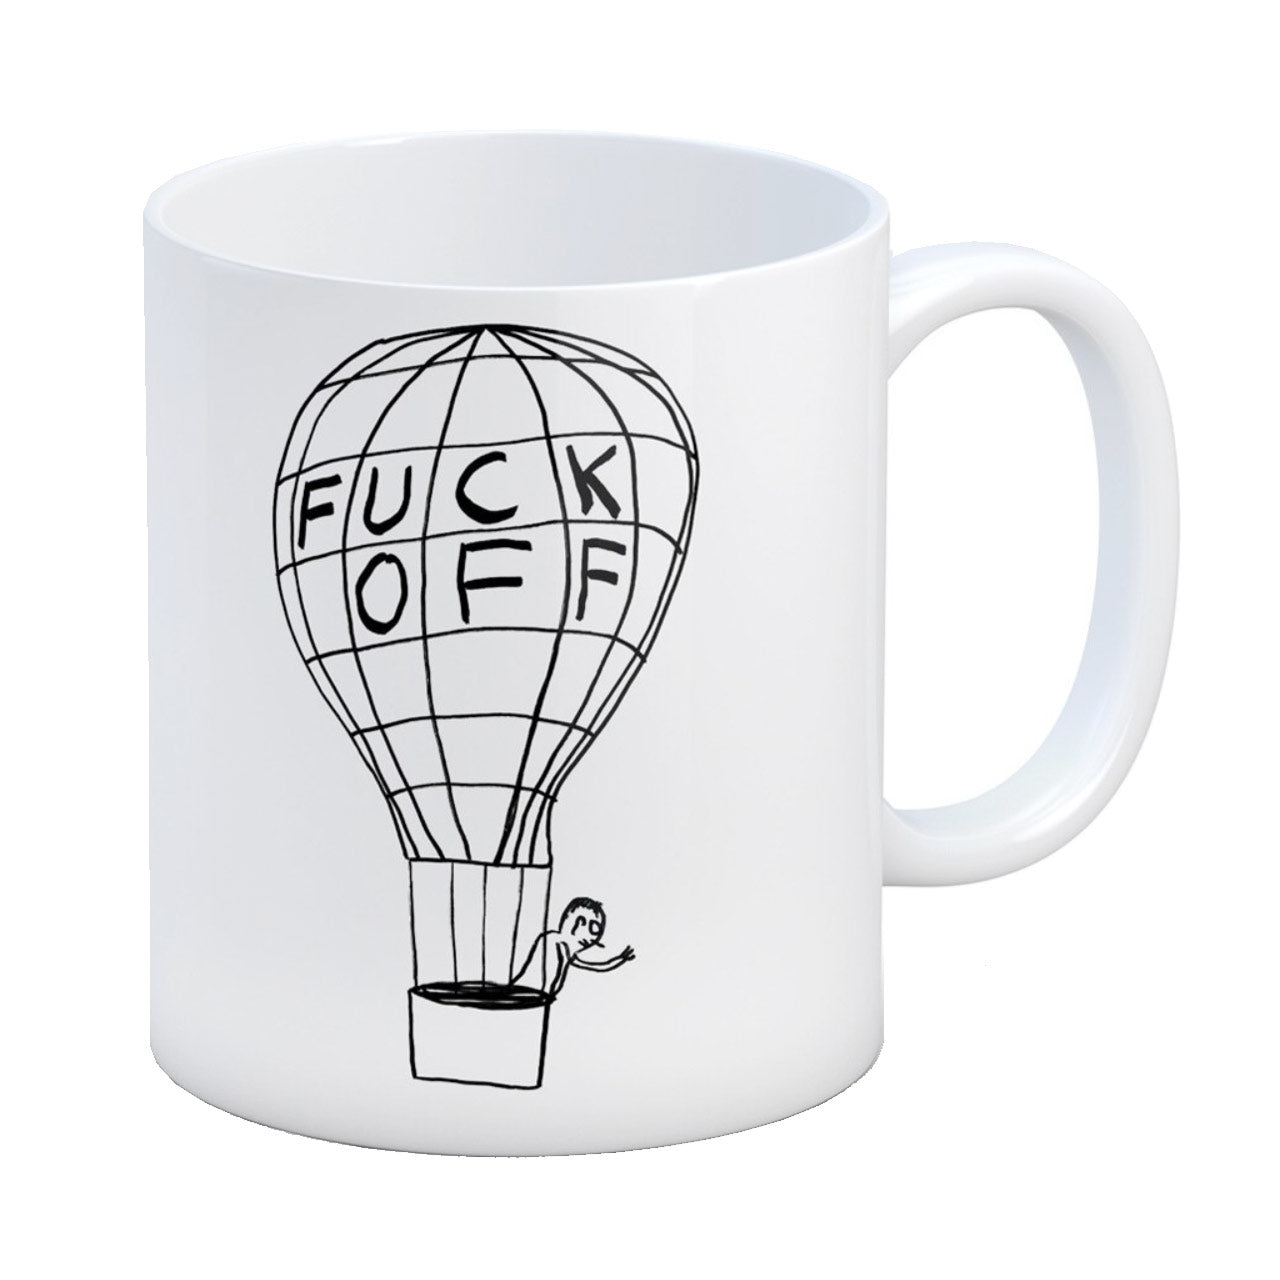 Fuck Off Balloon Boxed Mug